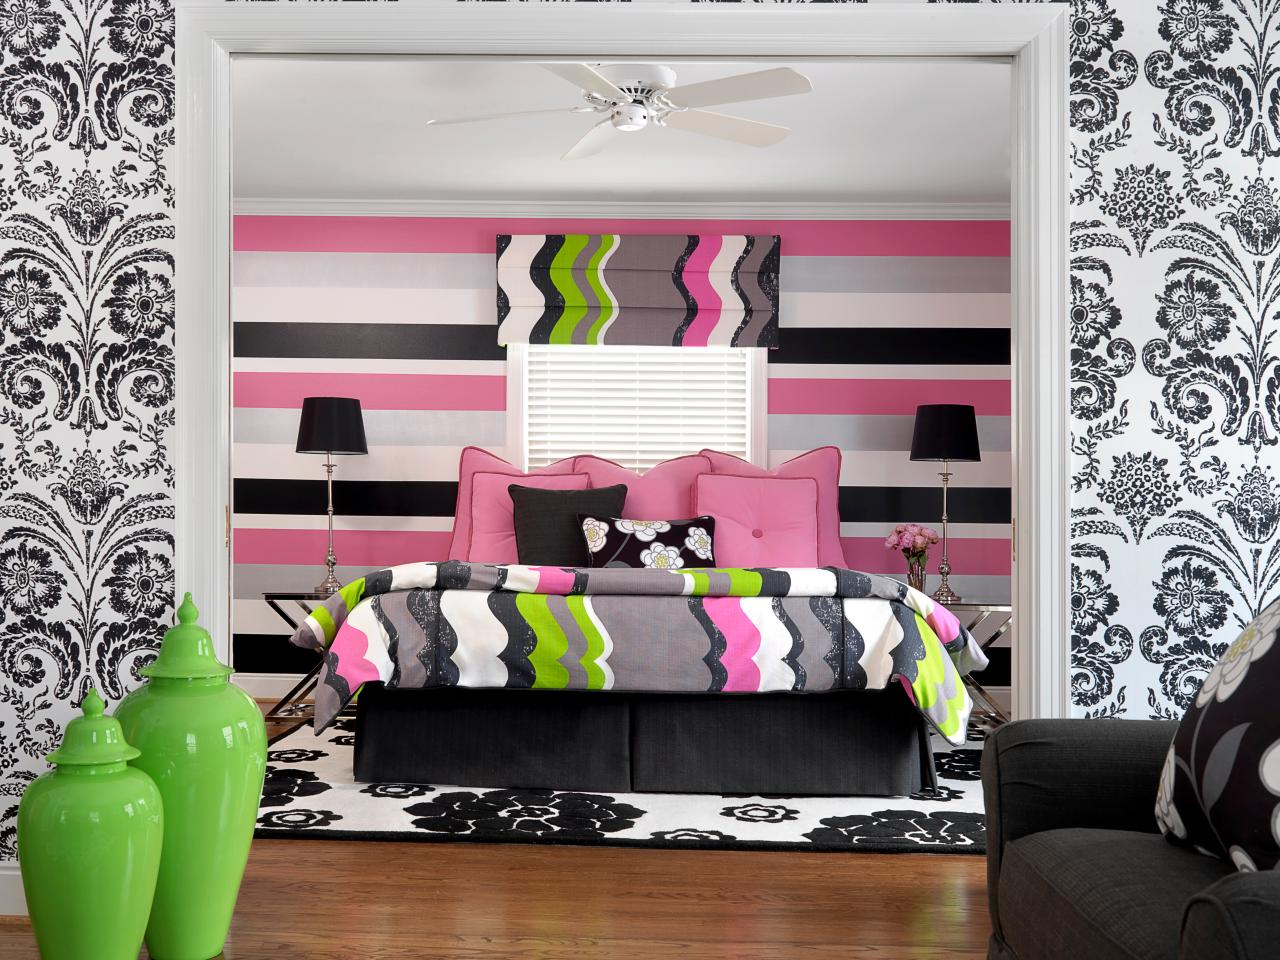 Bedroom designs for teenage girls purple - Tags Contemporary Style Purple Photos Black And White Photos White Photos Gray Photos Tween Girl Bedroom